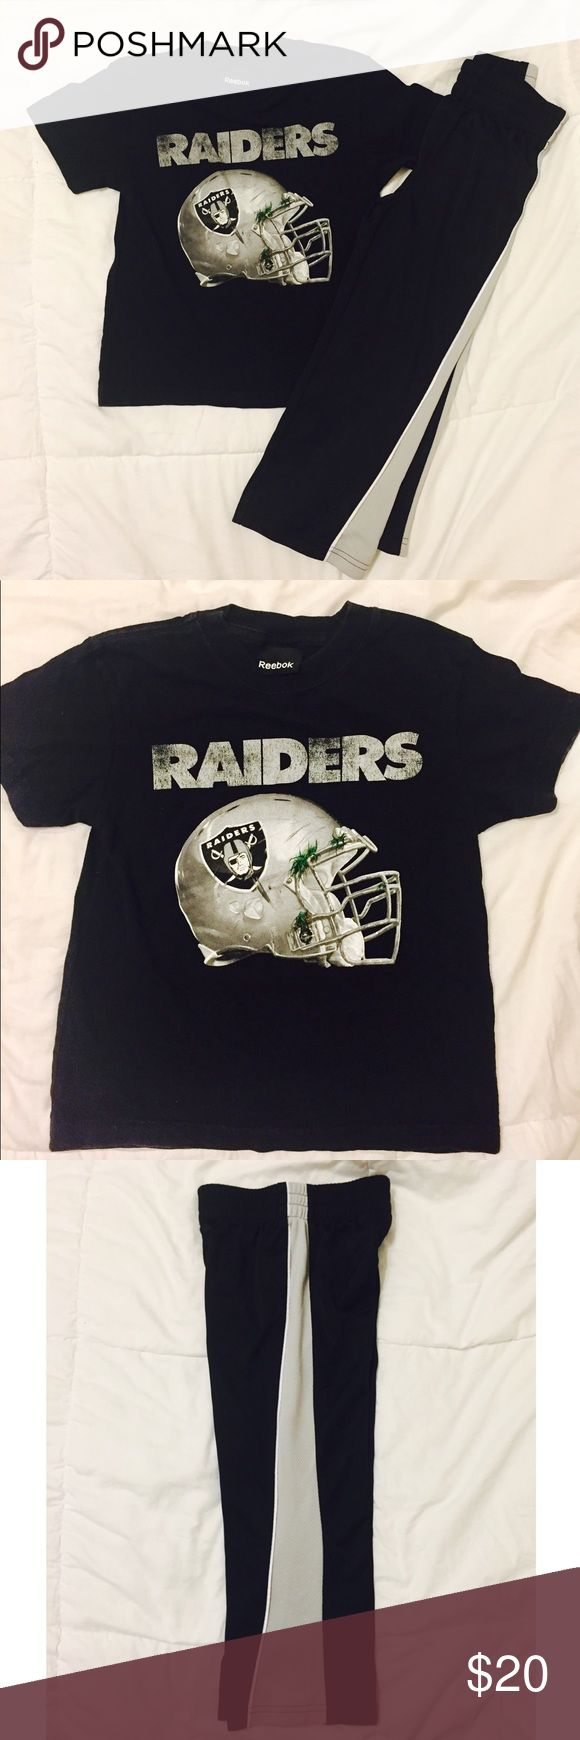 NFL OAKLAND RAIDERS Shirt Size 5/6 NFL OAKLAND RAIDERS Shirt Size 5/6 by Reebok and pants Size: (S) 4 by Jumping Beans.  It's not a set but they match. Good condition. Any Raider kid would wear it proudly! Reebok Shirts & Tops Tees - Short Sleeve